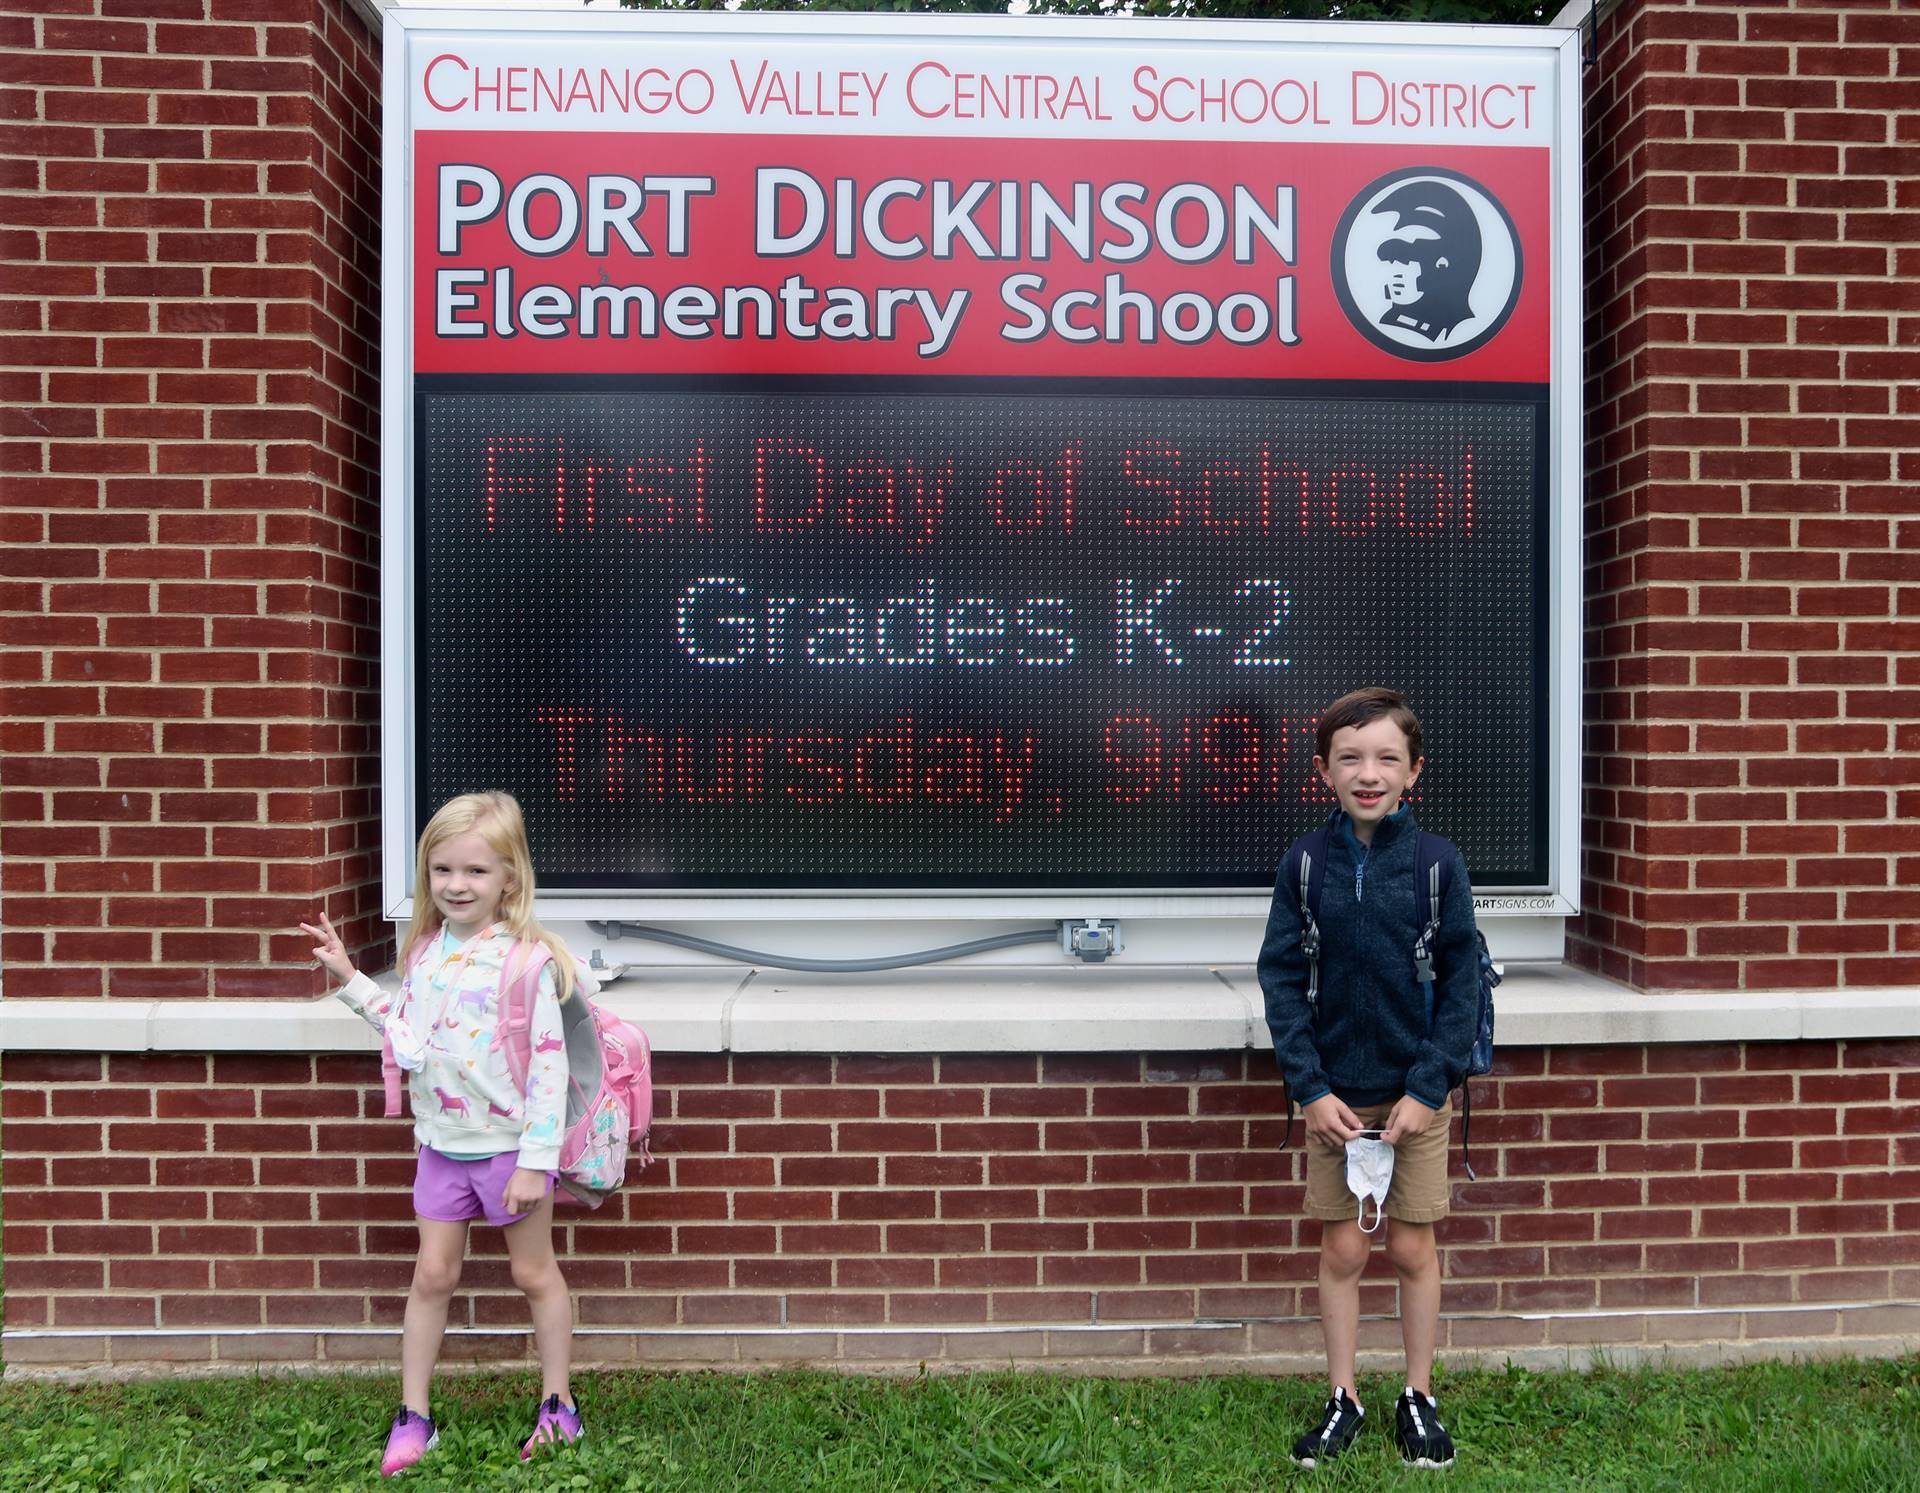 Port Dickinson Elementary First Day of School 3